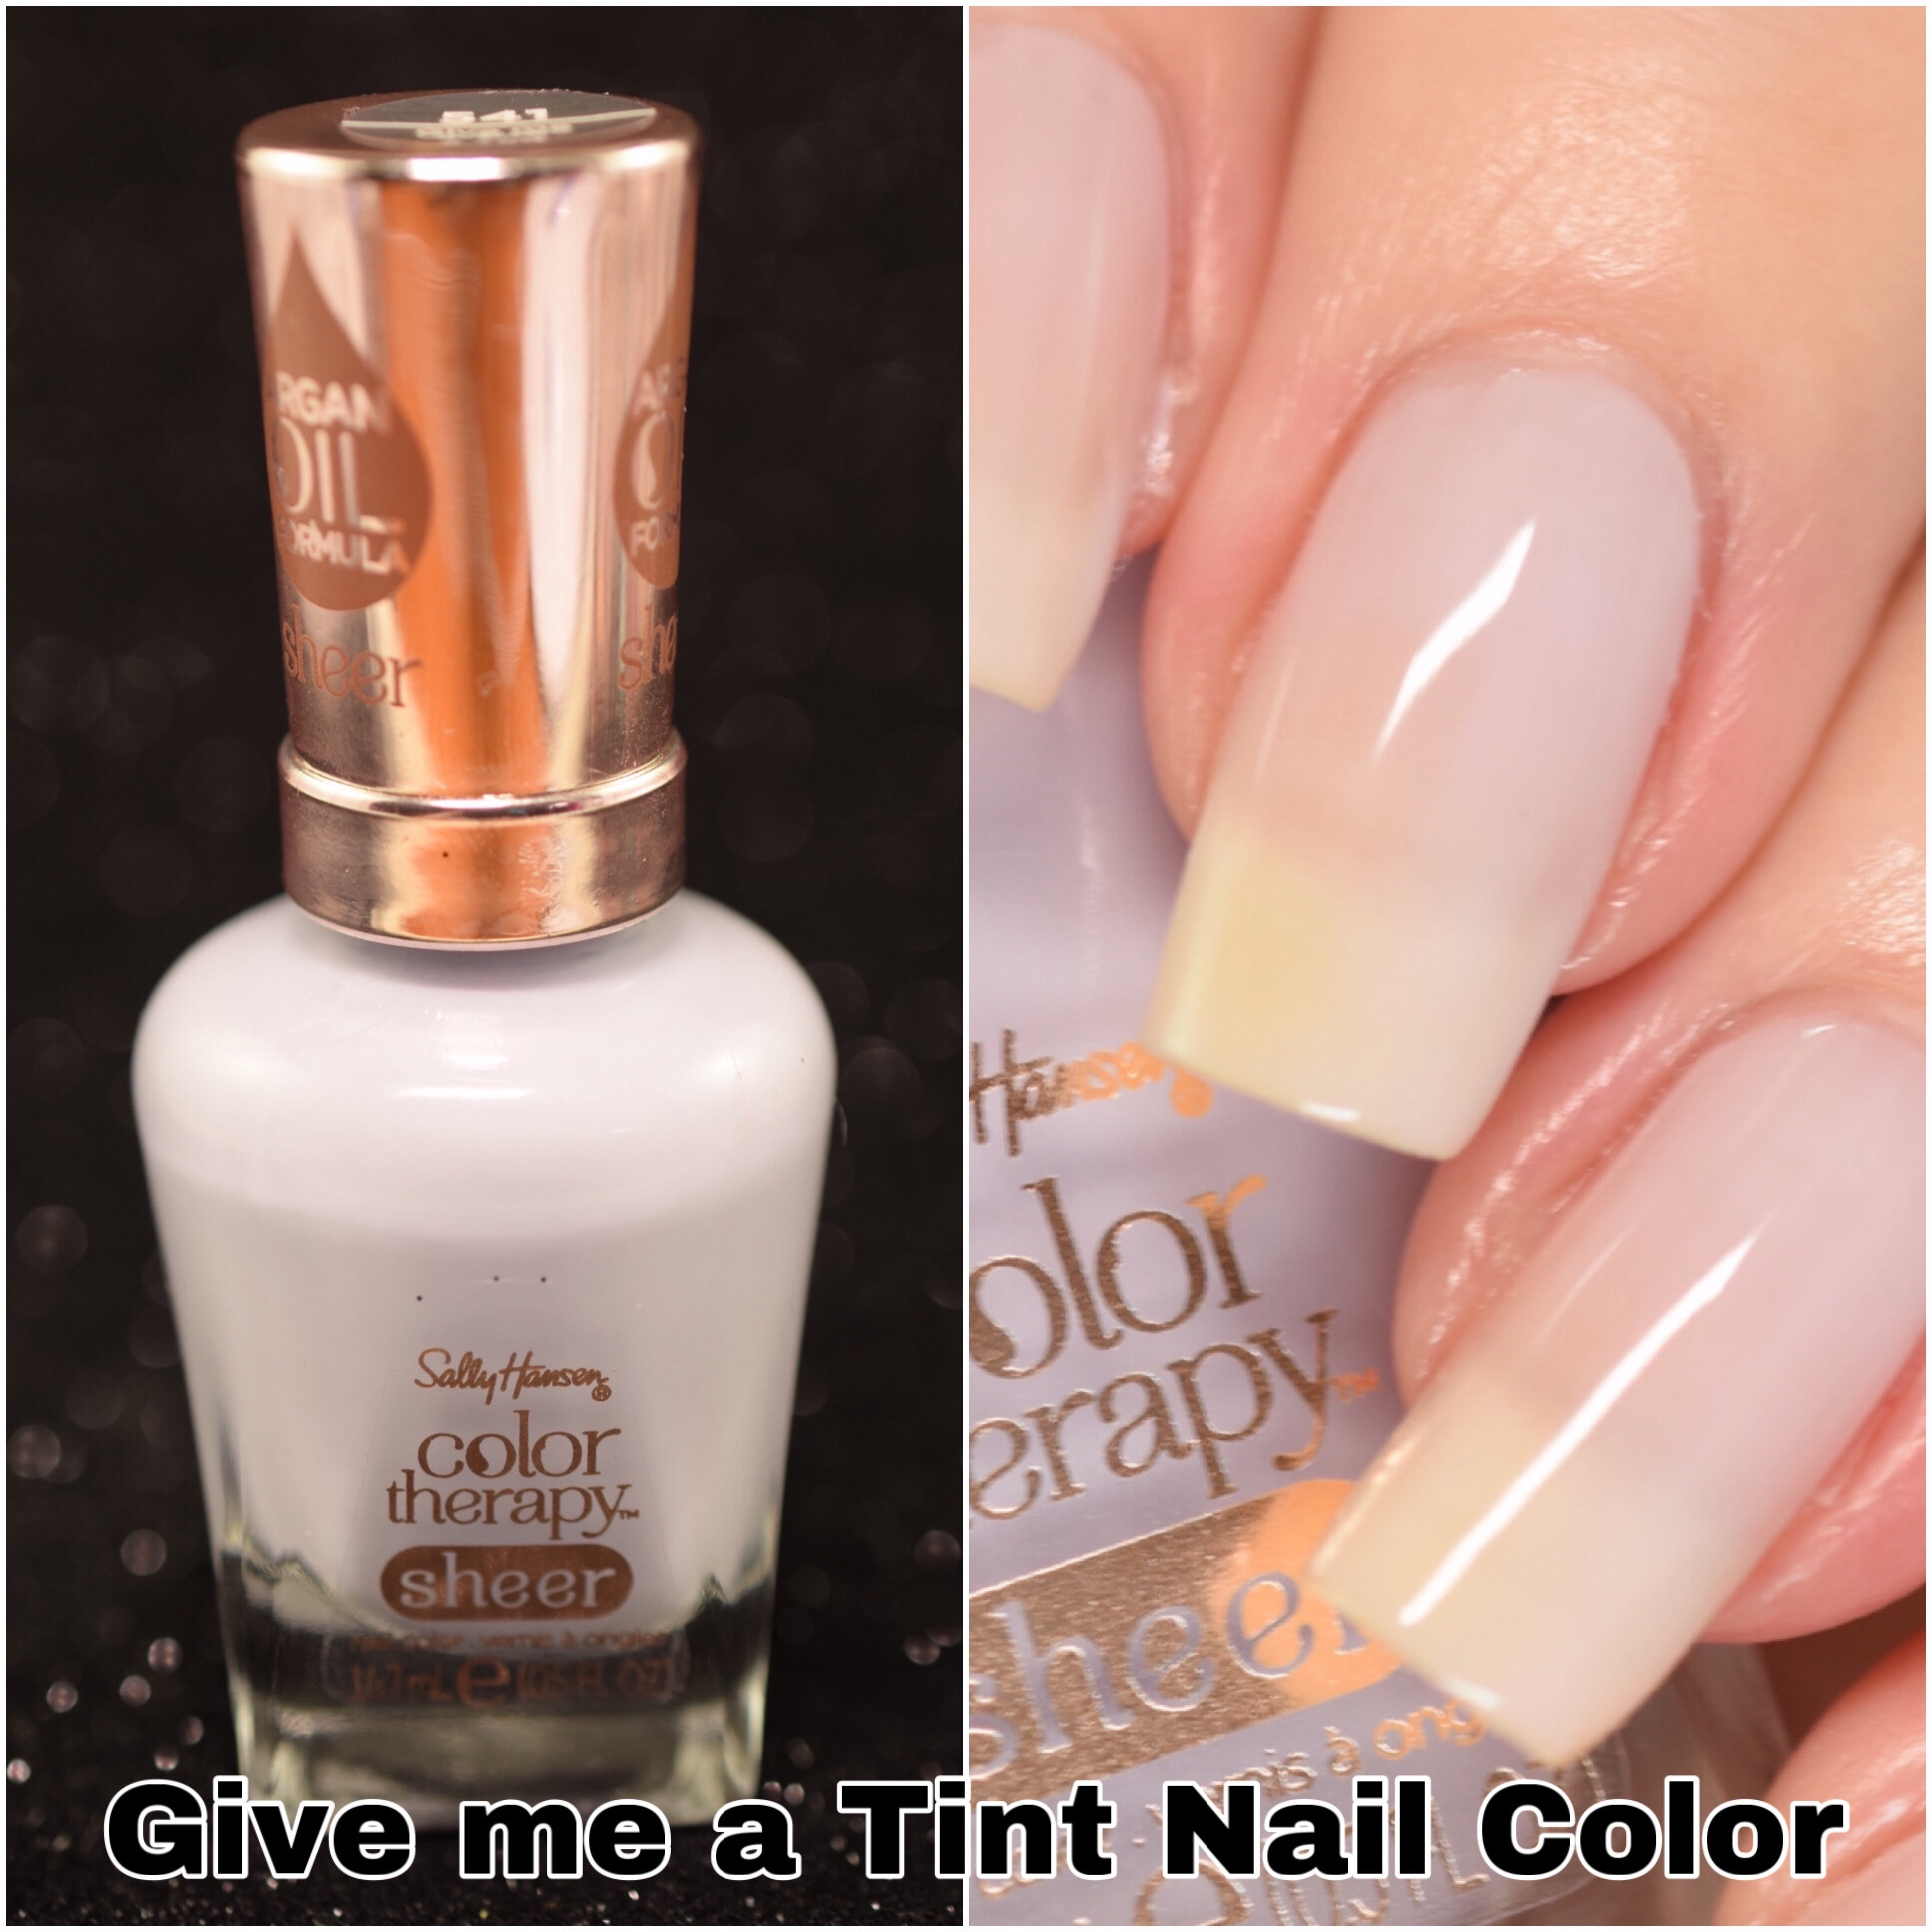 Sally Hansen Color Therapy Give me a Tint